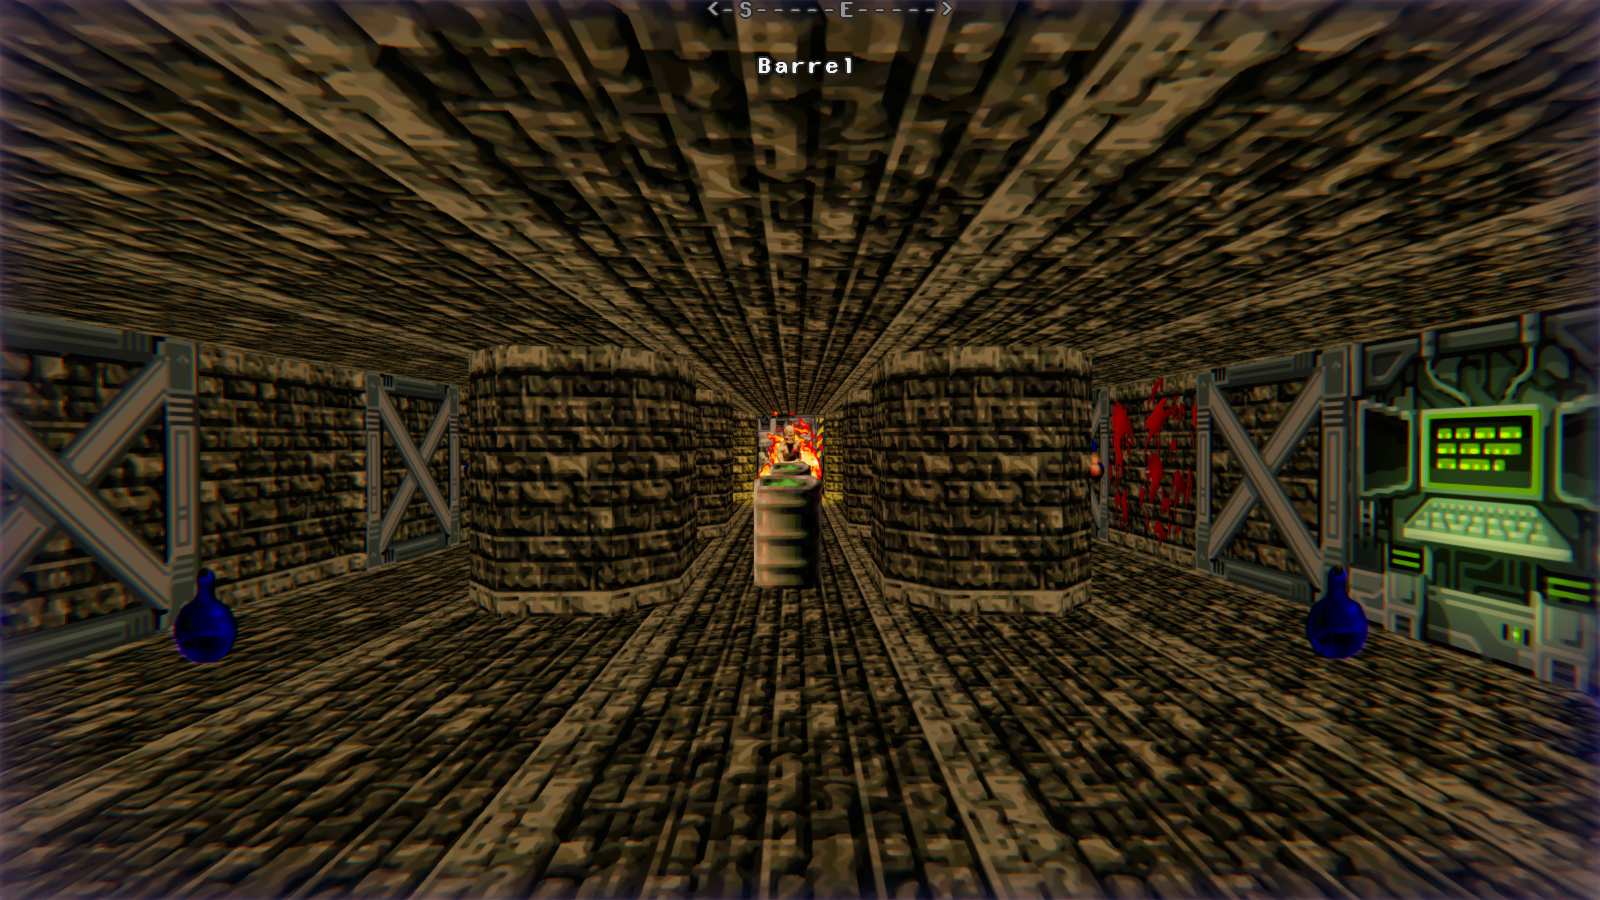 DRRP Doom RPG Remake Project SEC5 Sector 5 Barrel Archvile Prison Screenshot